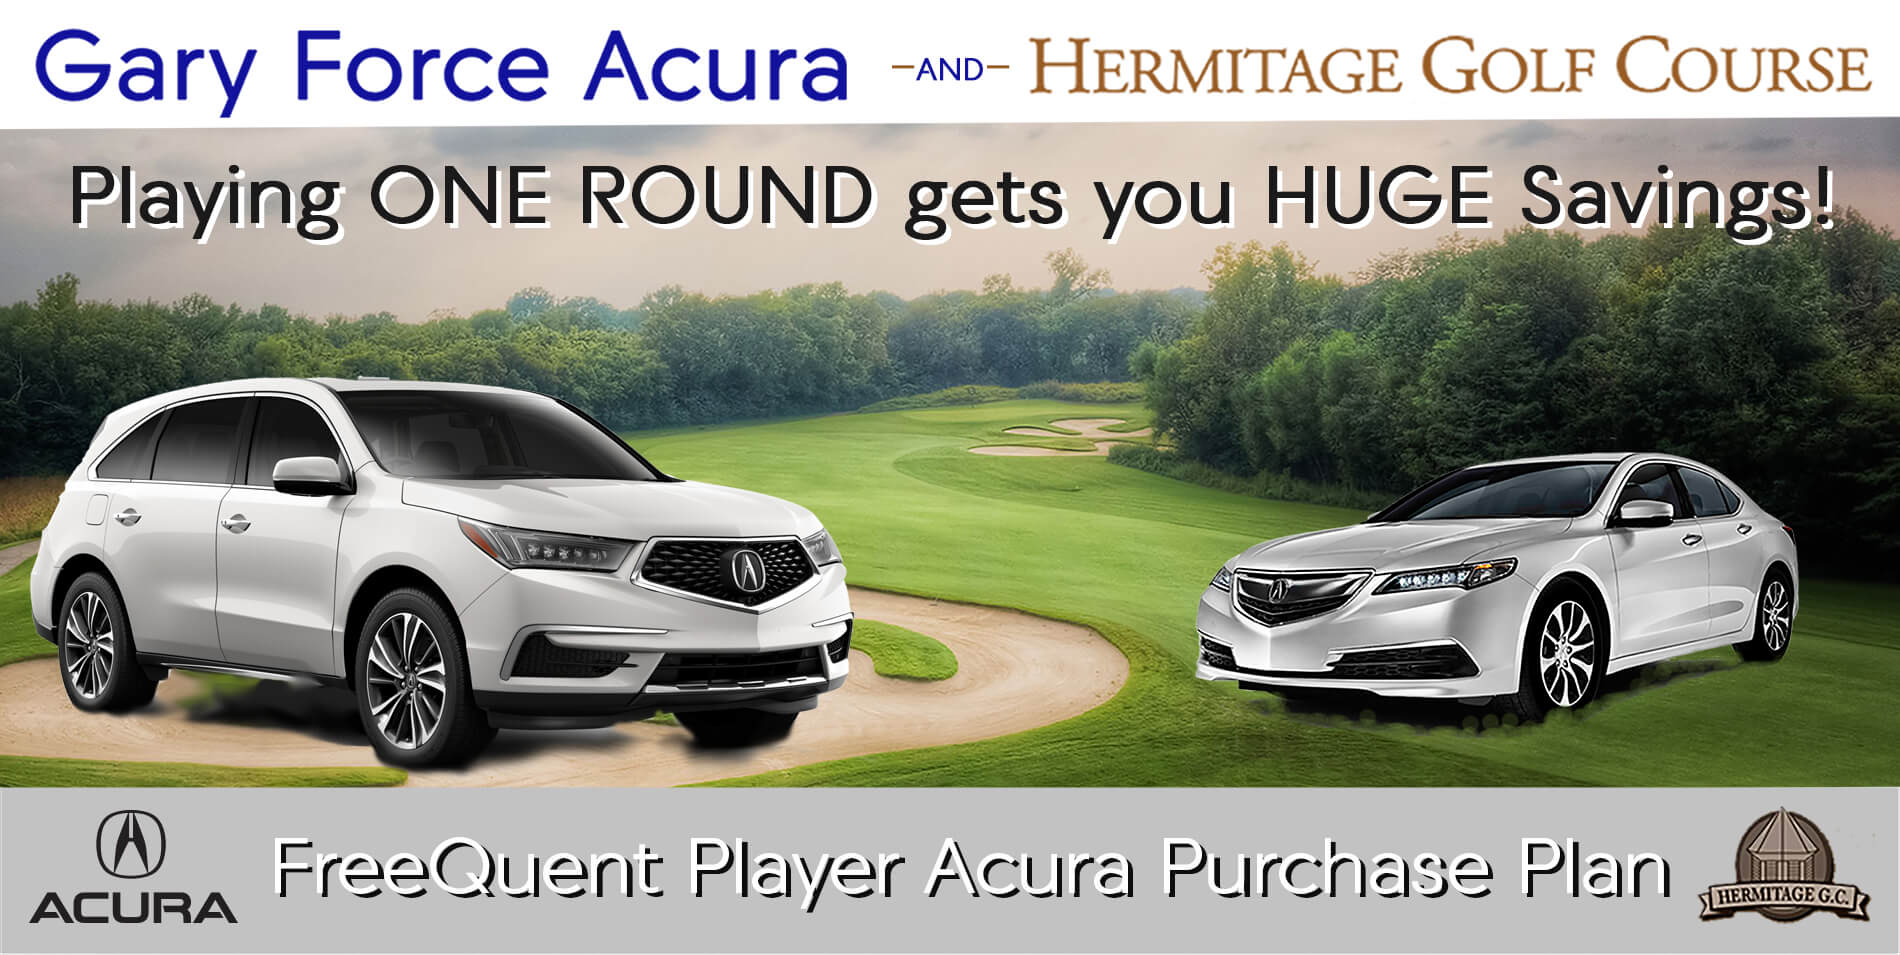 FreeQuent Player Acura Purchase Plan | Gary Force Acura